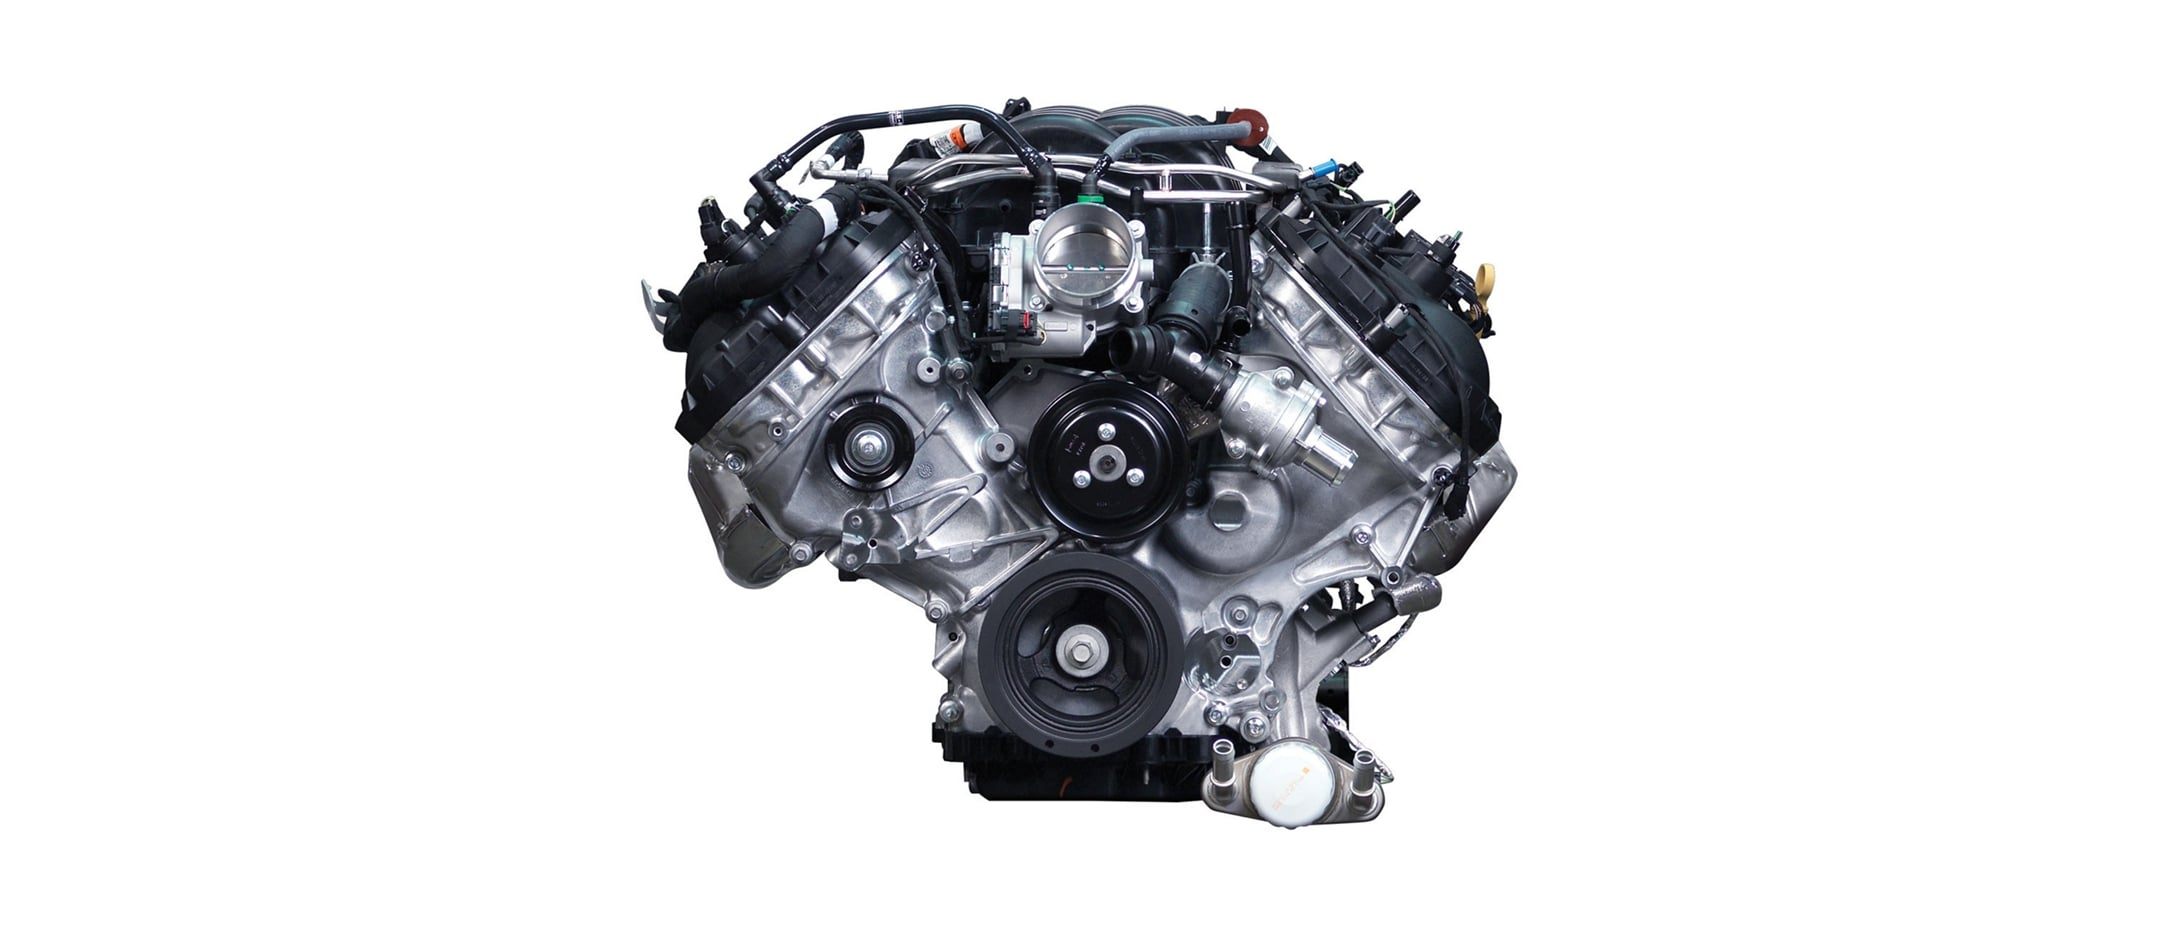 5.0L TI-VCT V8 Ford F150 Engine